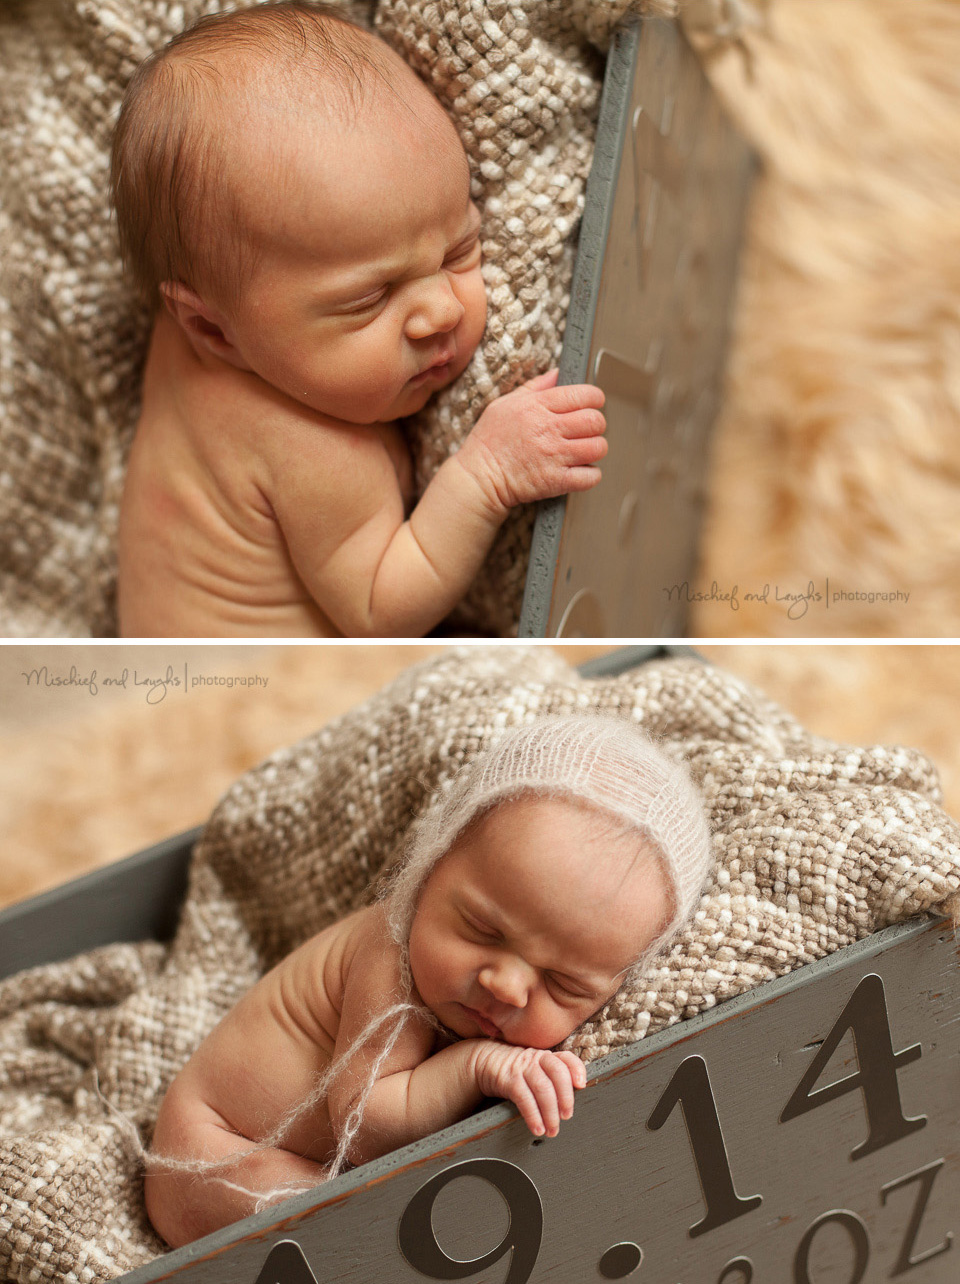 Newborn Photography. Mischief and Laughs Photography, Cincinnati OH